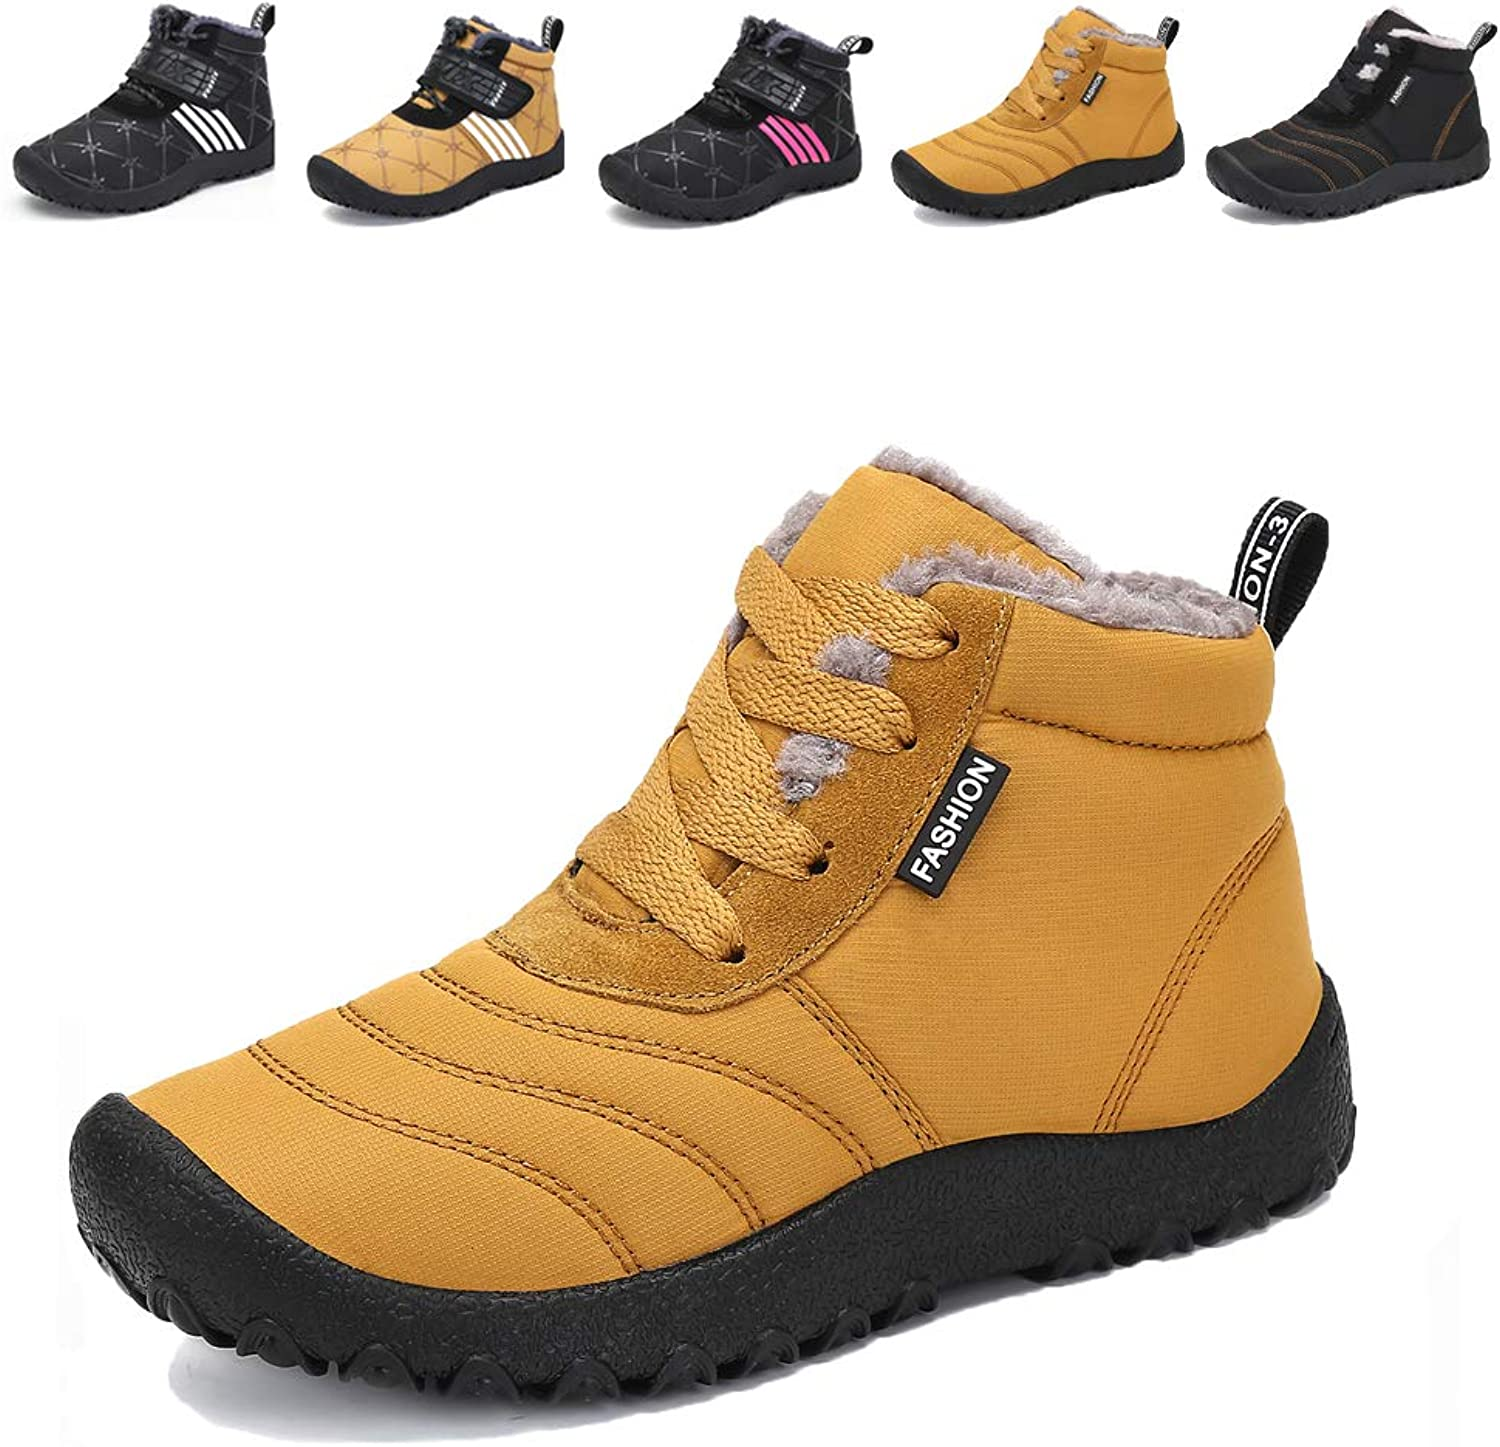 49d0676d54 Boys Girls Winter shoes Snow Boots Fur Lined Outdoor Slip On Ankle ...